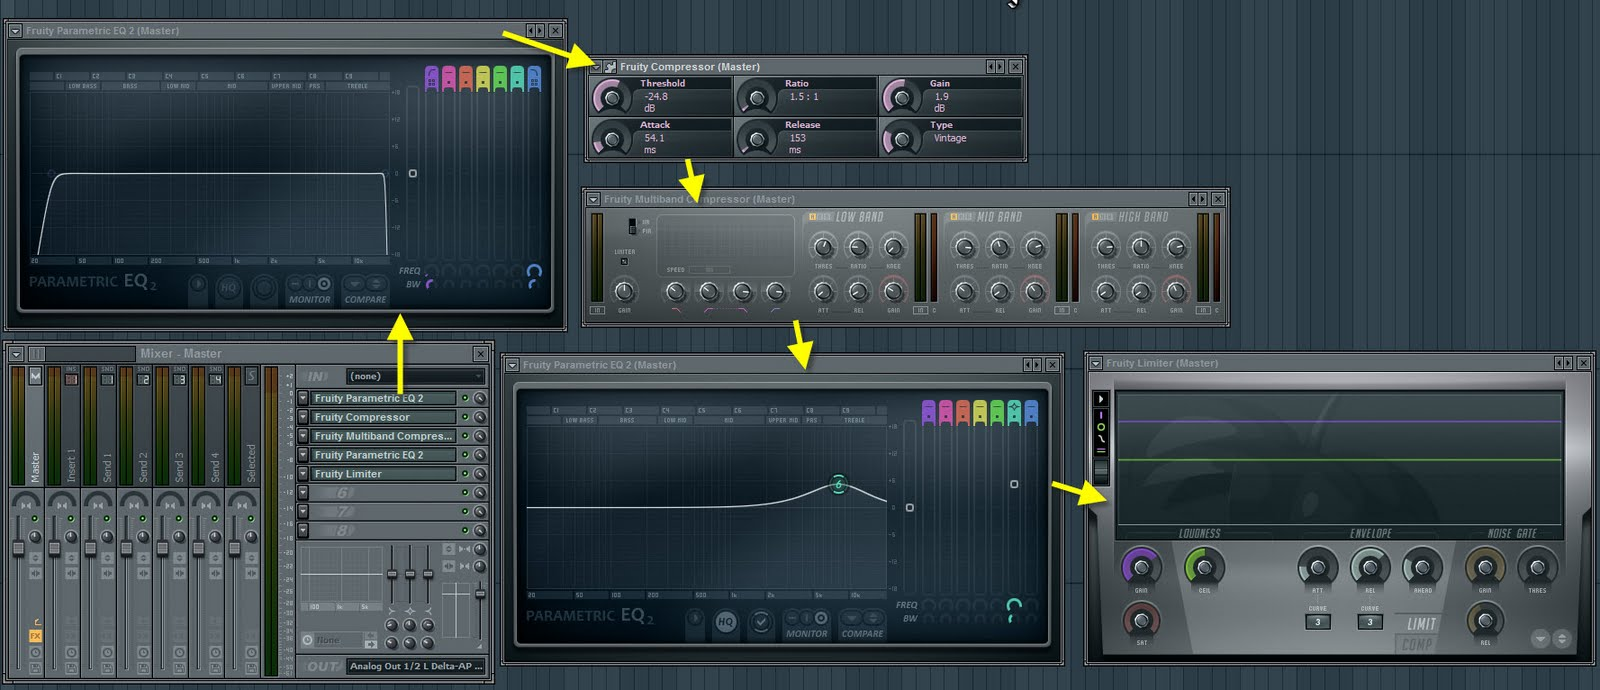 Turntables of life: How To Master A Song In FL Studio